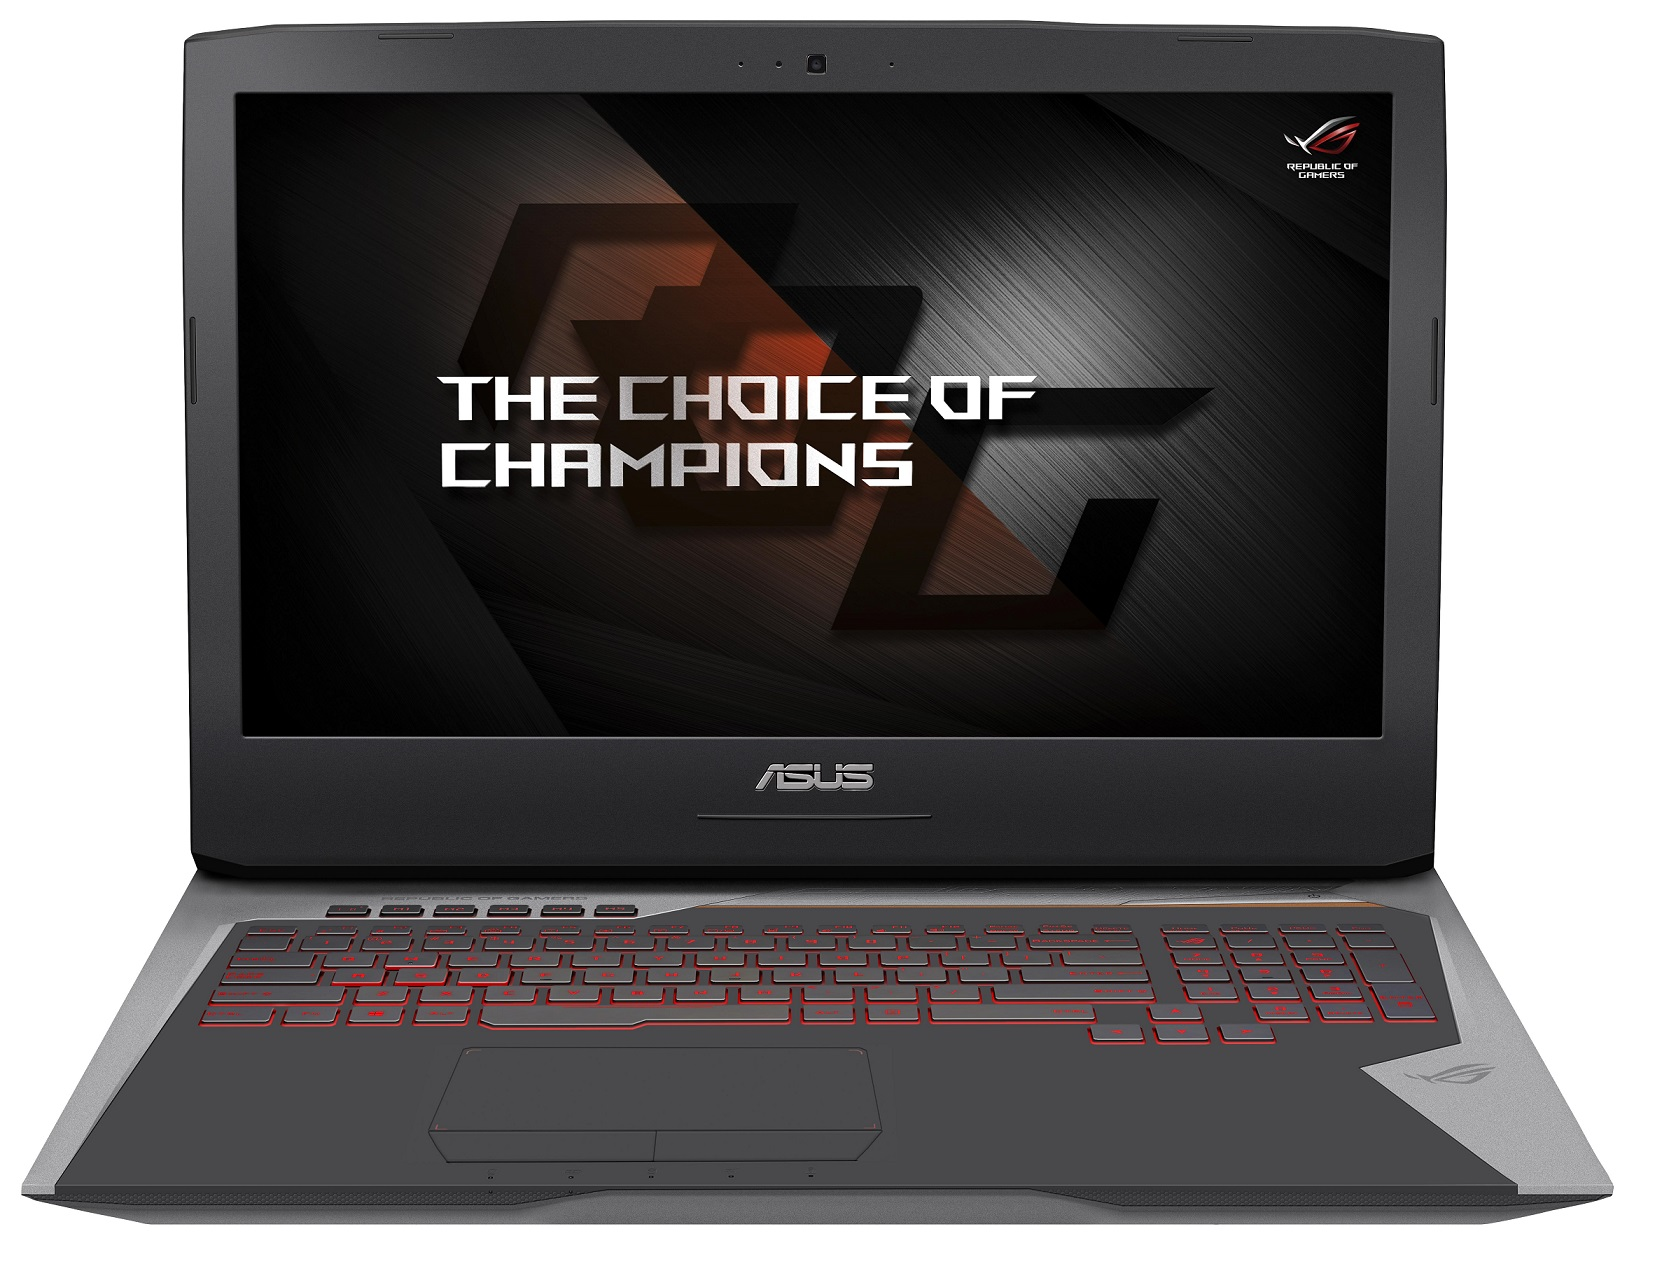 "ASUS G752VS(KBL)-BA289T i7-7700HQ/16GB/256GB SSD+1TB 7200ot./DVD-RW/GTX1070 8GB/17,3"" 1920x1080 120Hz IPS matný/W10 Home"